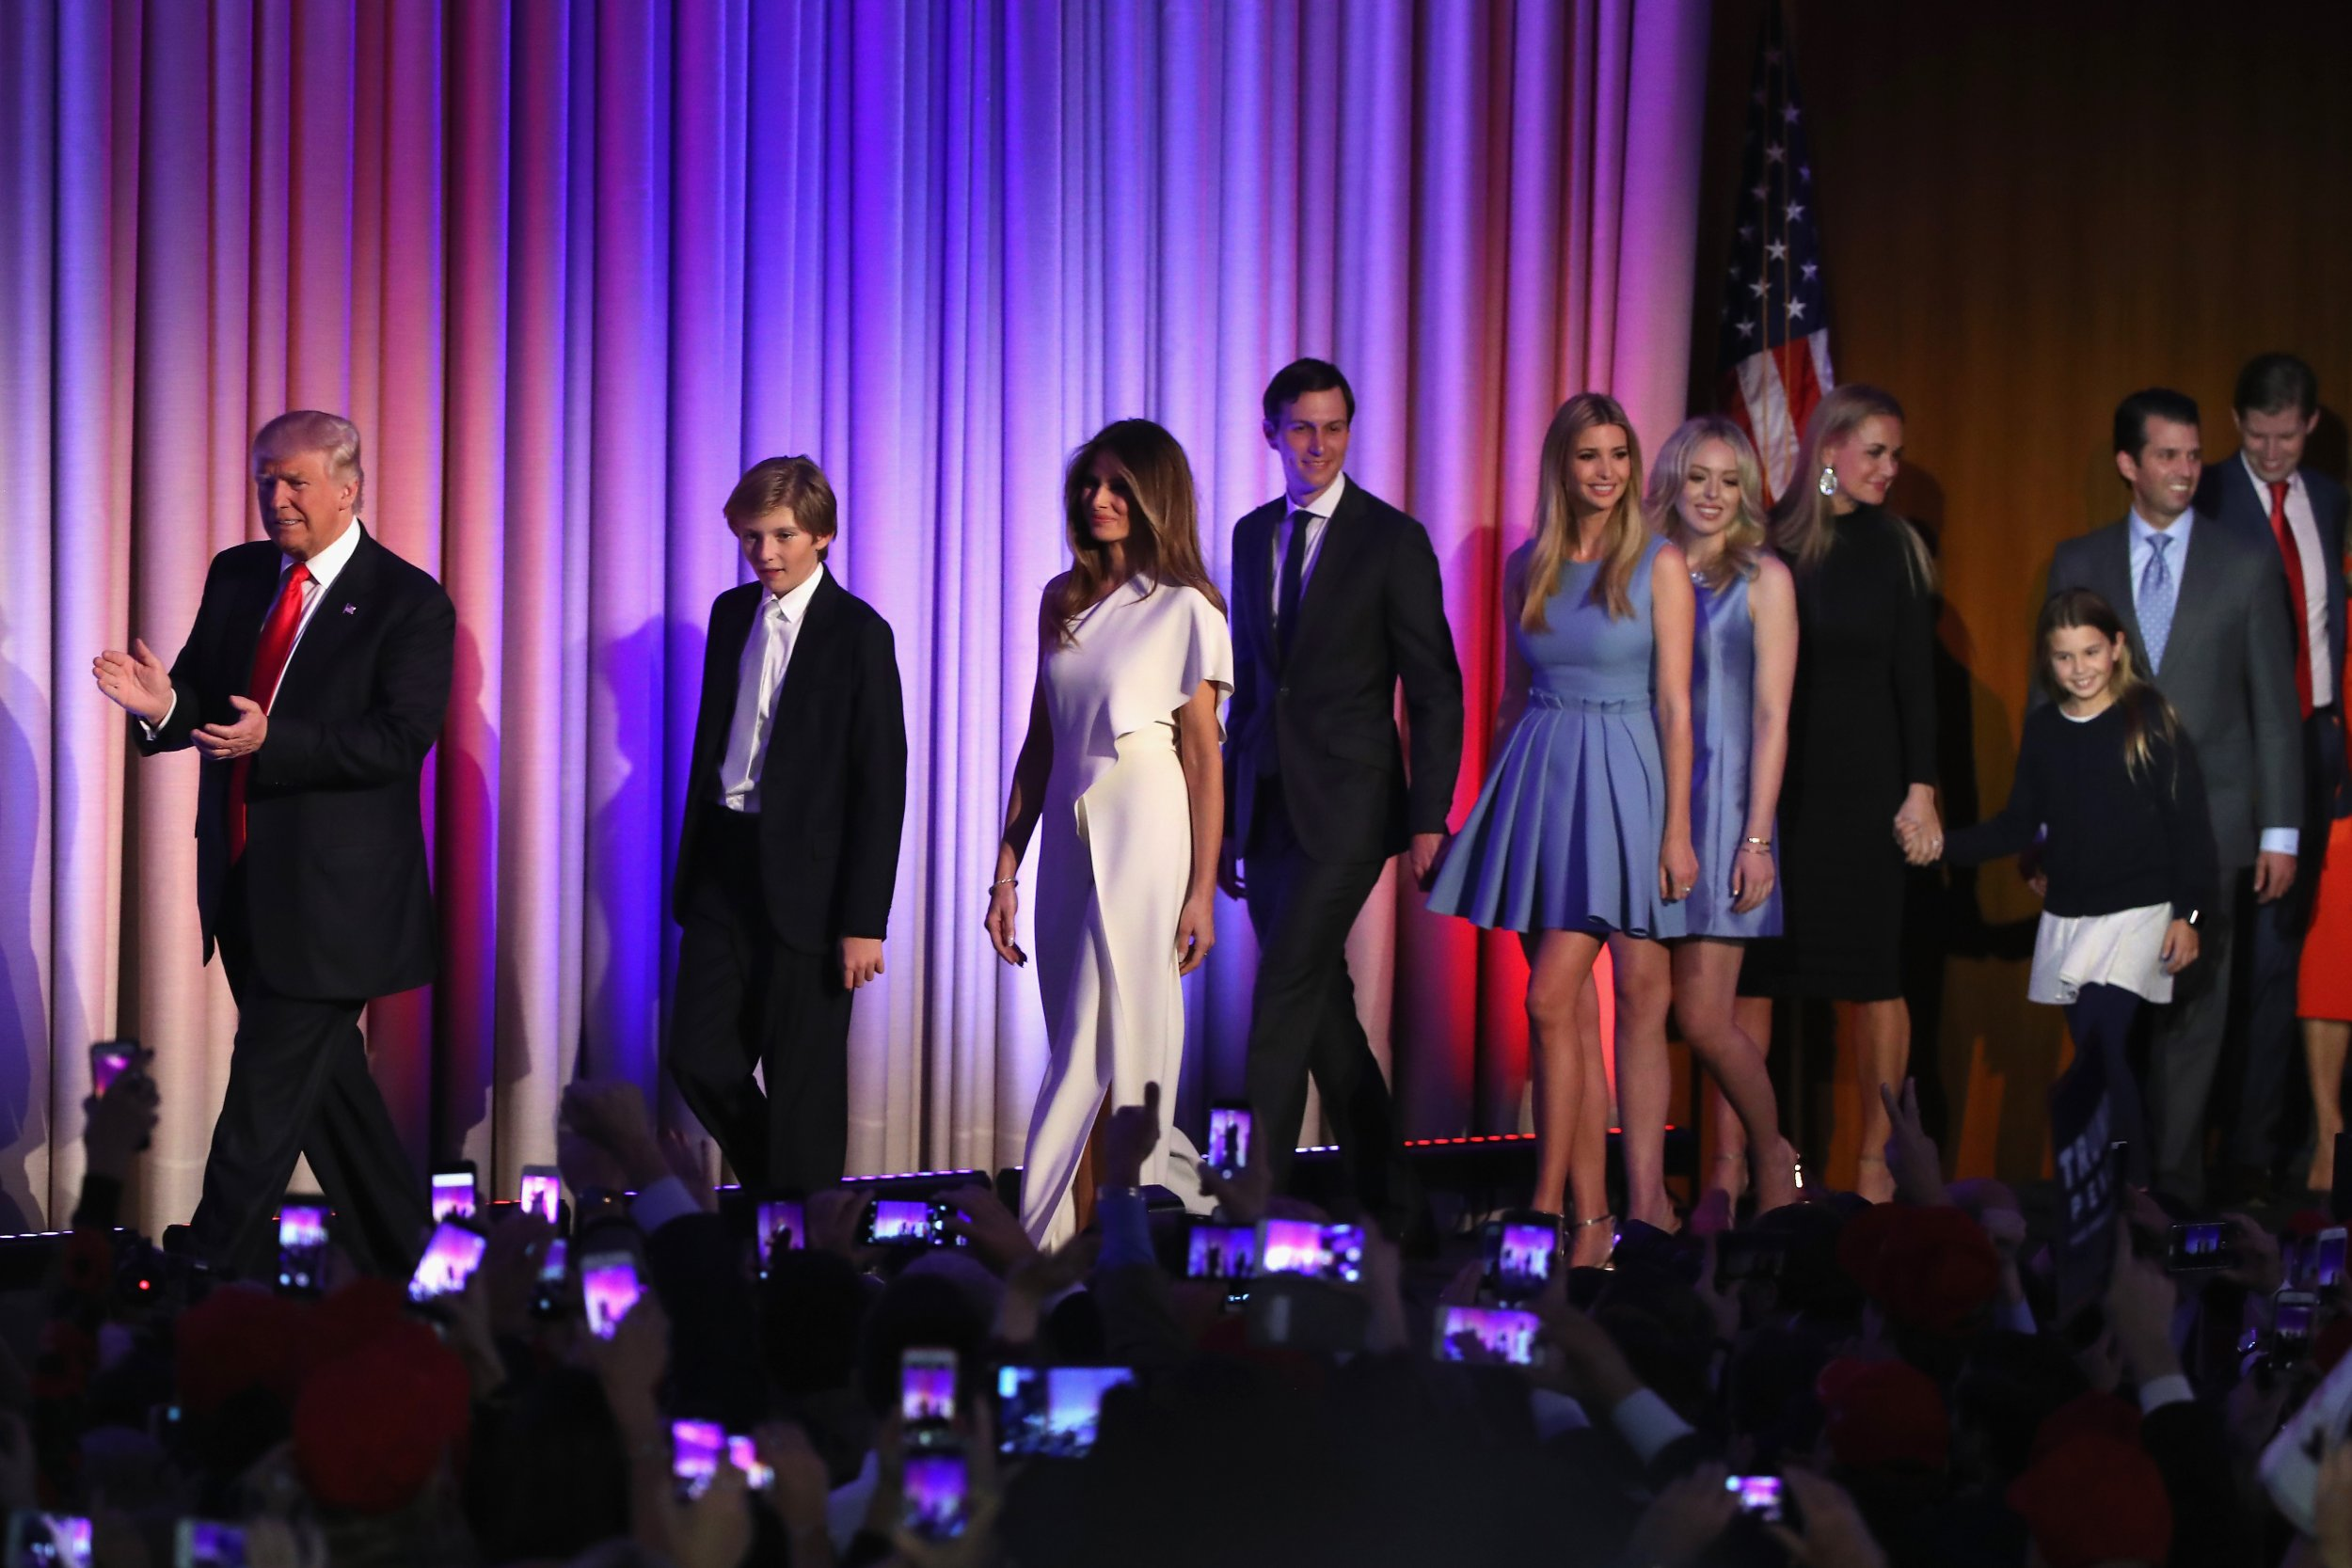 Donald Trump and his family